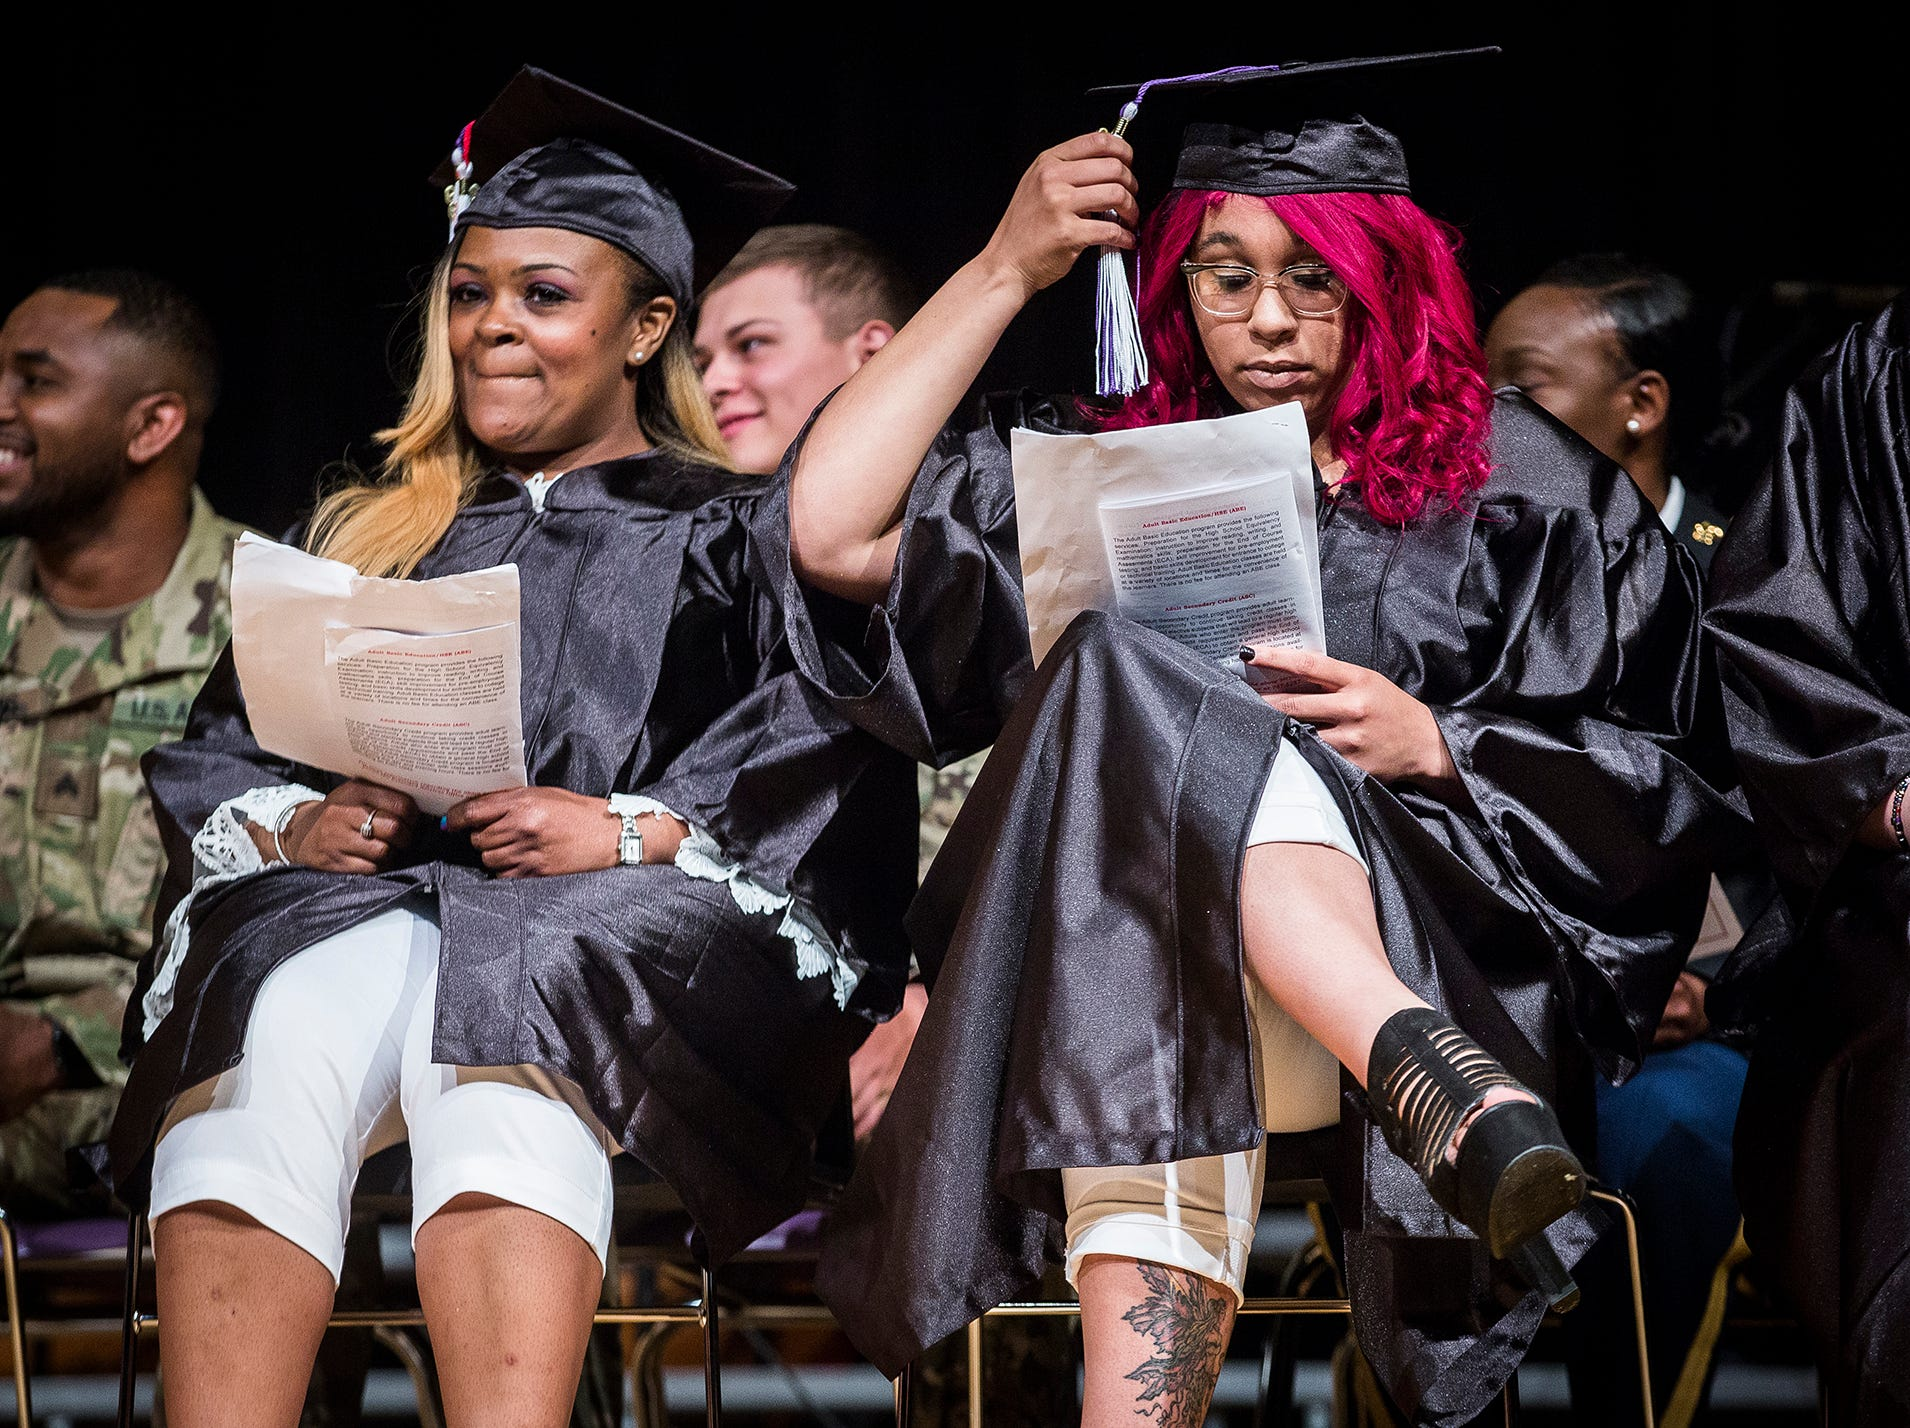 Angela Bennett and Karmen Lykins prepare for their speeches during the 2019 MCS Adult Education Program graduation ceremony at Central Thursday night.